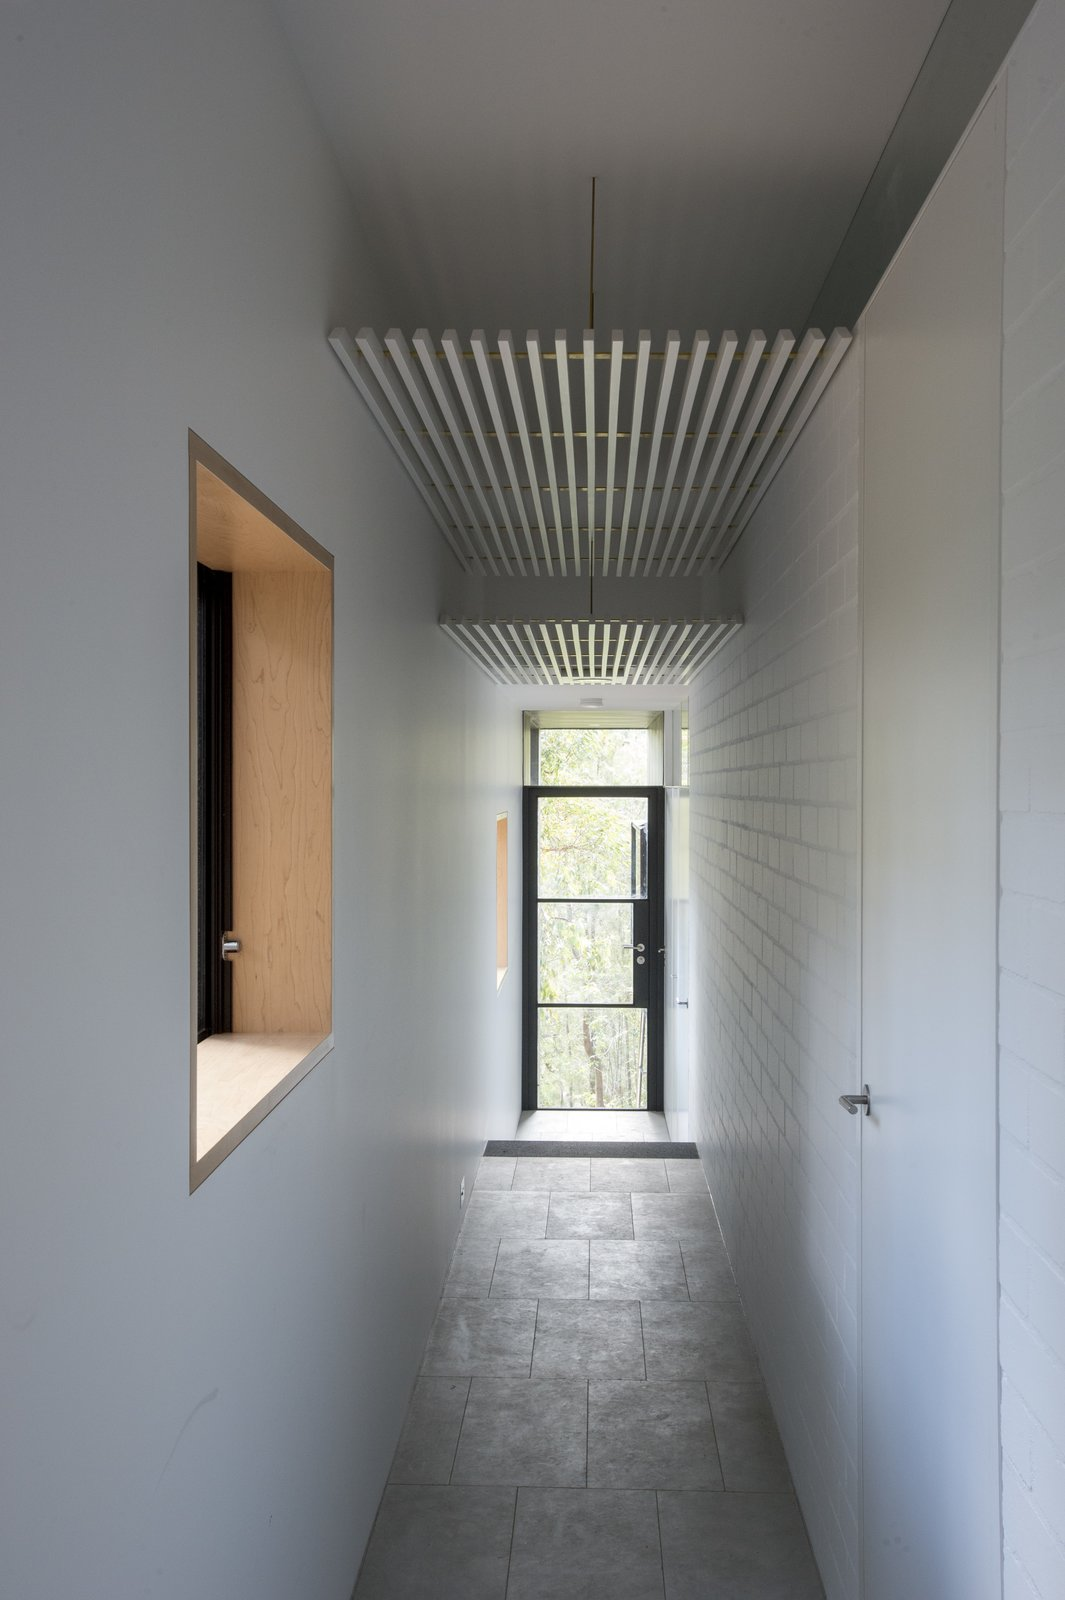 Hallway and Concrete Floor Passageways take advantage of the Southside of the house, so that living areas and bedrooms receive Northern sunlight. White walls are satin-finished or bagged brickwork.  Photo 4 of 8 in An Arresting Australian Abode by Glenn Murcutt Needs a Buyer